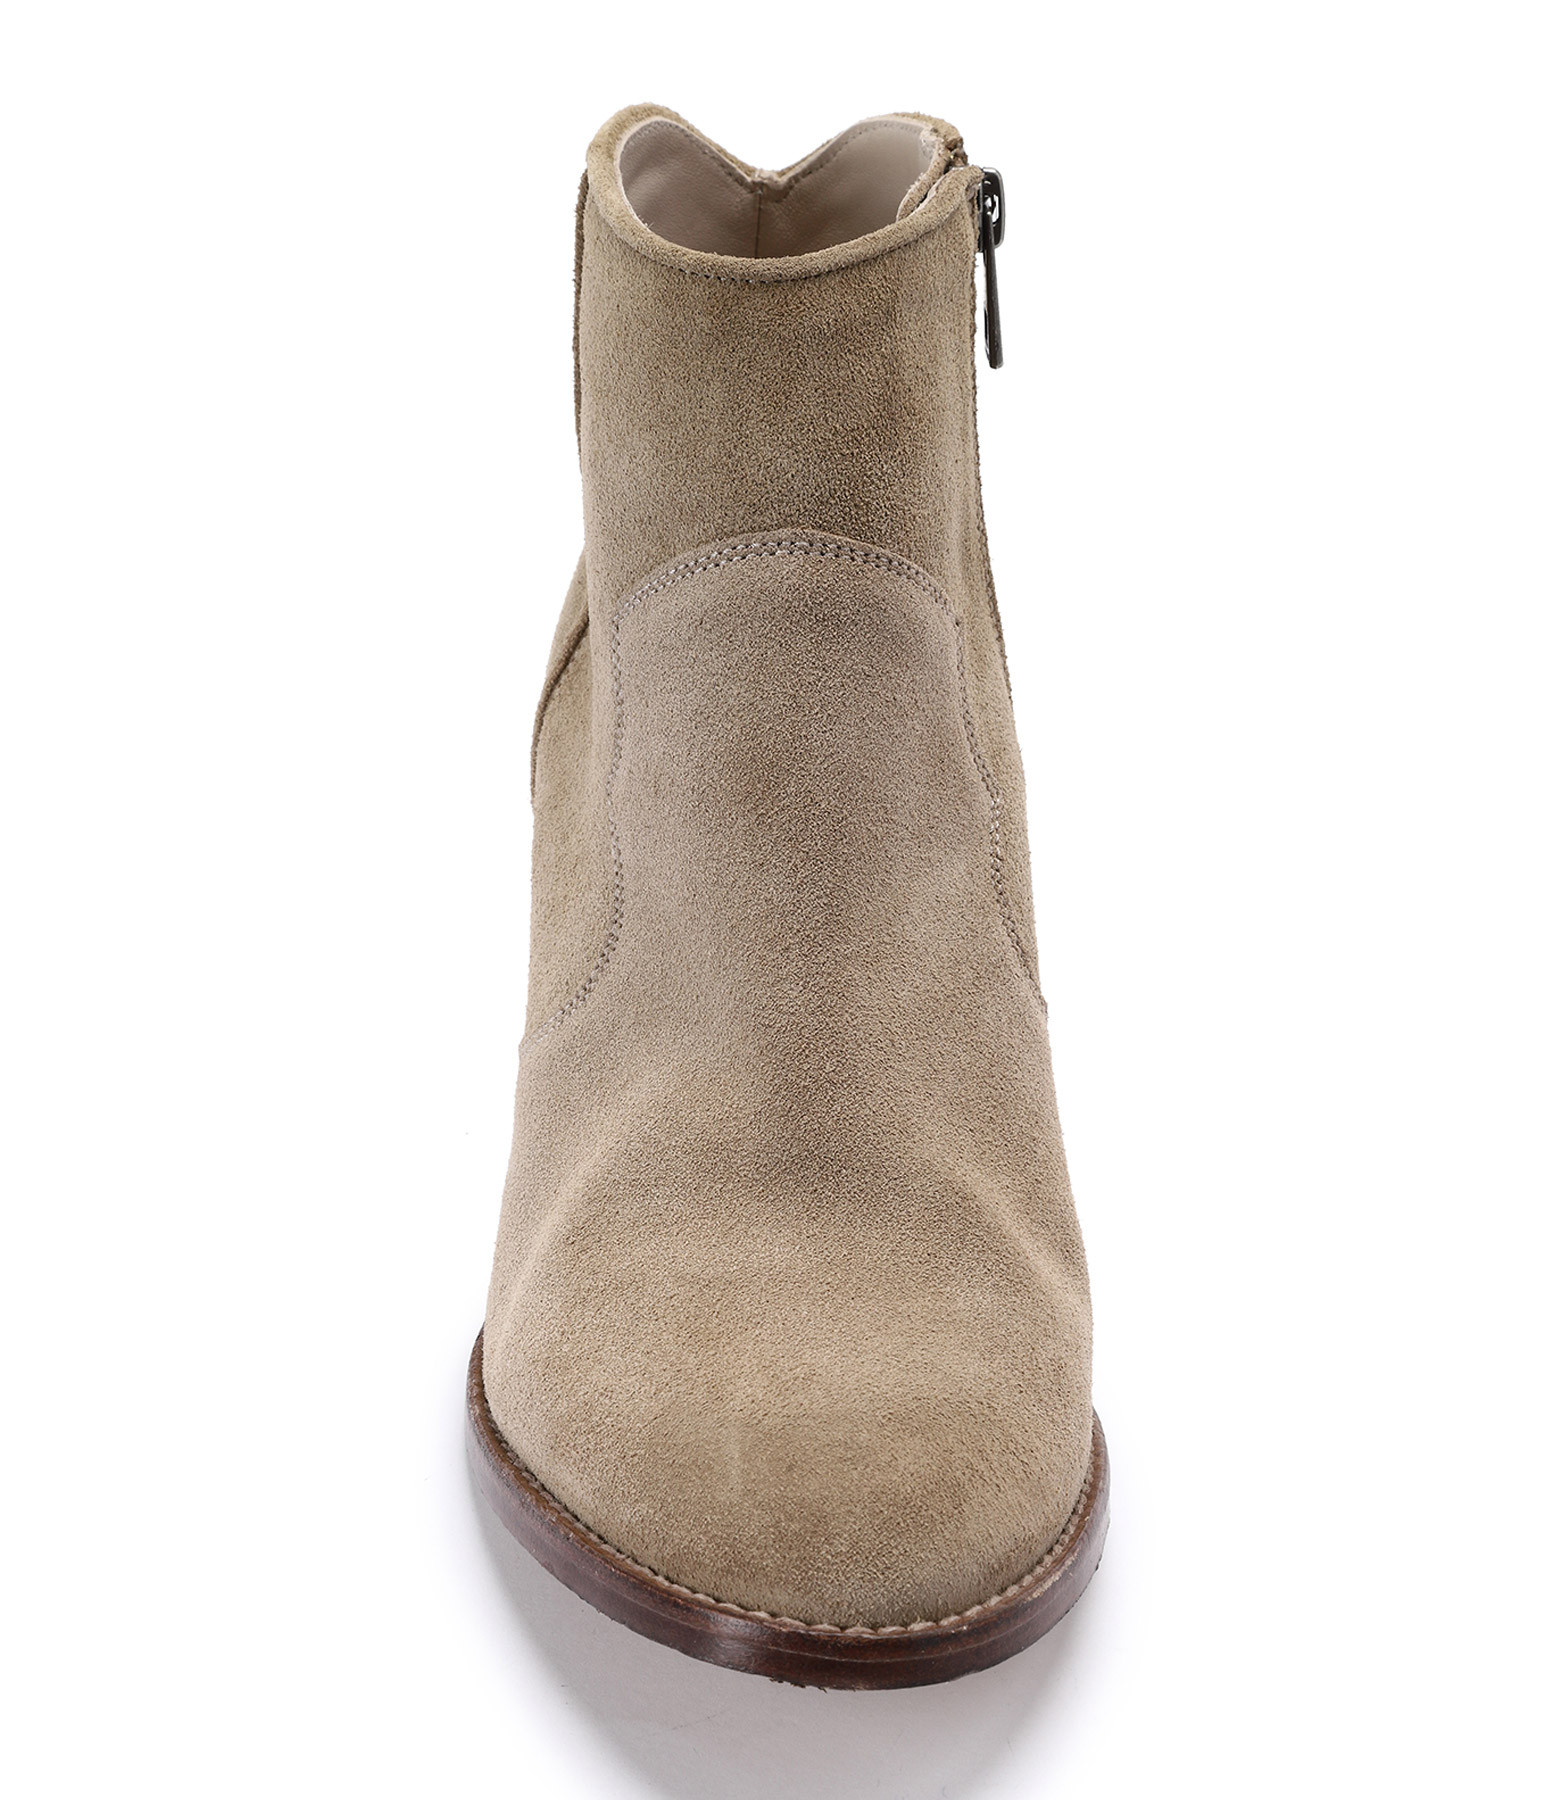 ZADIG & VOLTAIRE - Bottines Molly Cuir Taupe